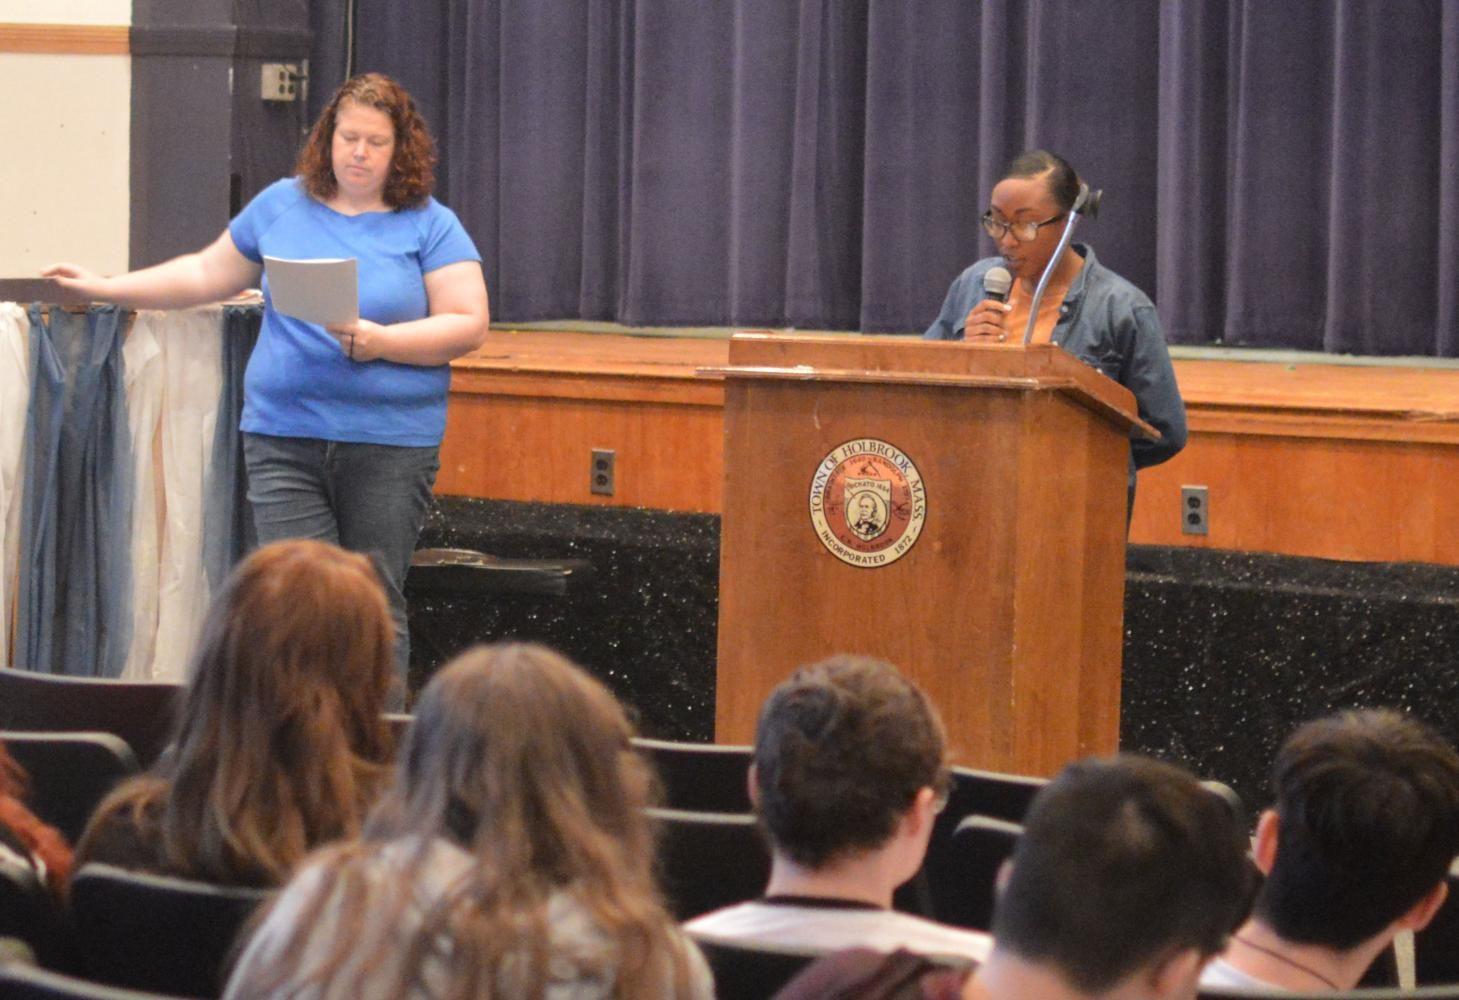 Sharlanda Colon gave an attention grabbing speech about her future promises as Secretary for the class of 2019